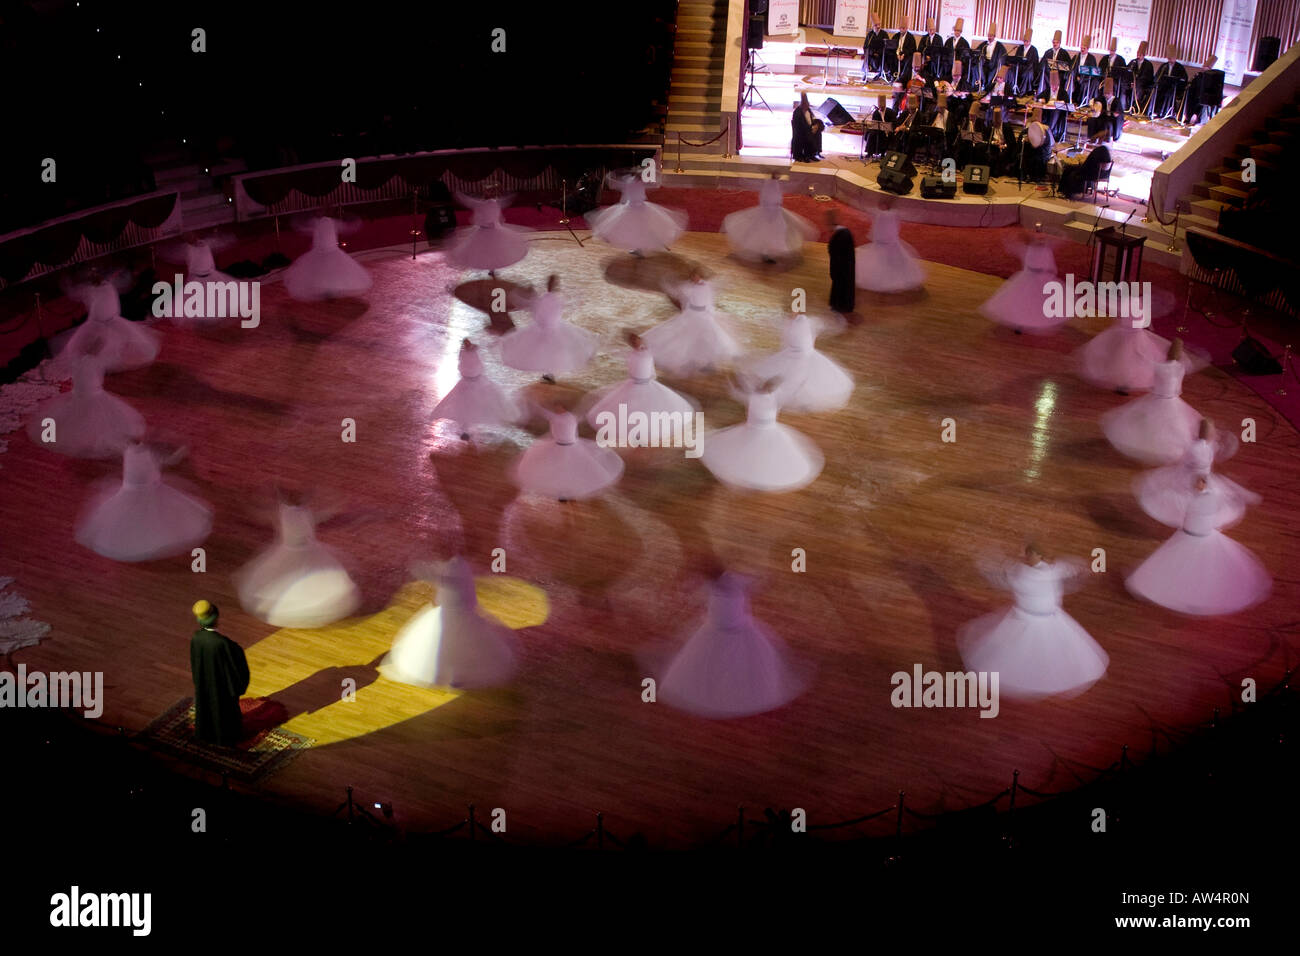 the whirling dervishes in Konya, Turkey during the Mevlana Festival which takes place early every December. - Stock Image